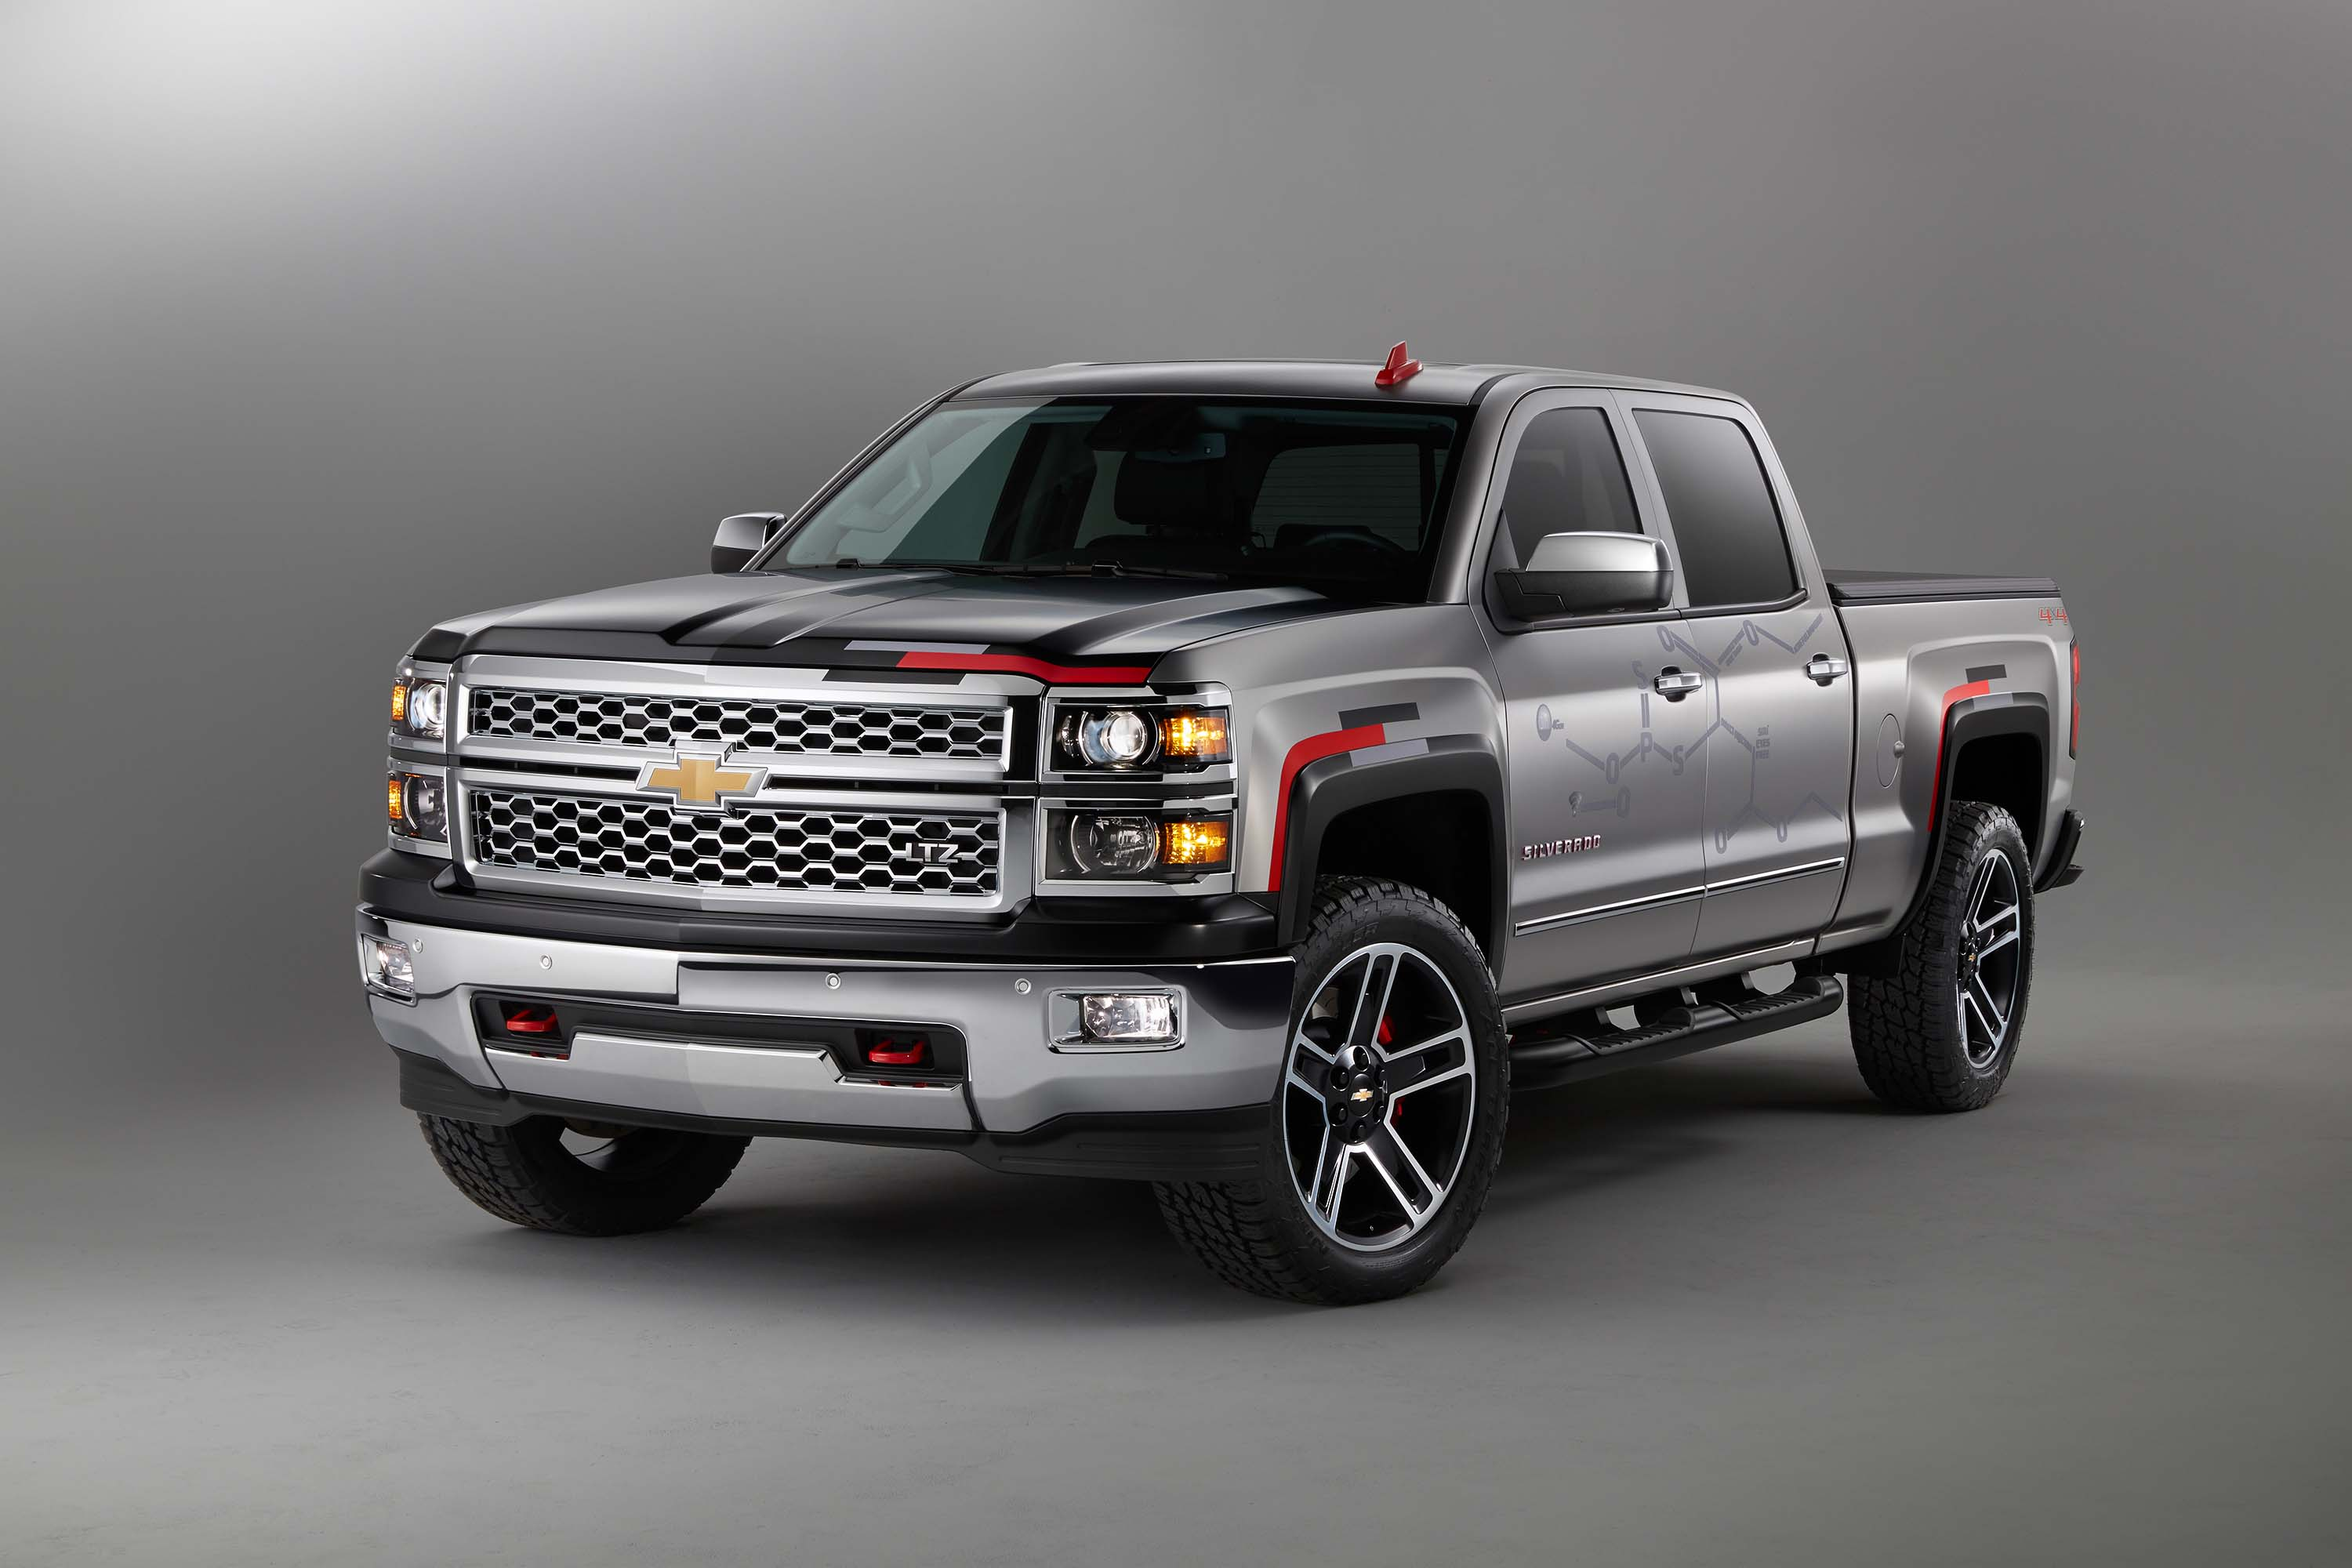 Gmc Special Edition Trucks >> 2019 Chevrolet Silverado will have part-aluminum body | Between the Axles